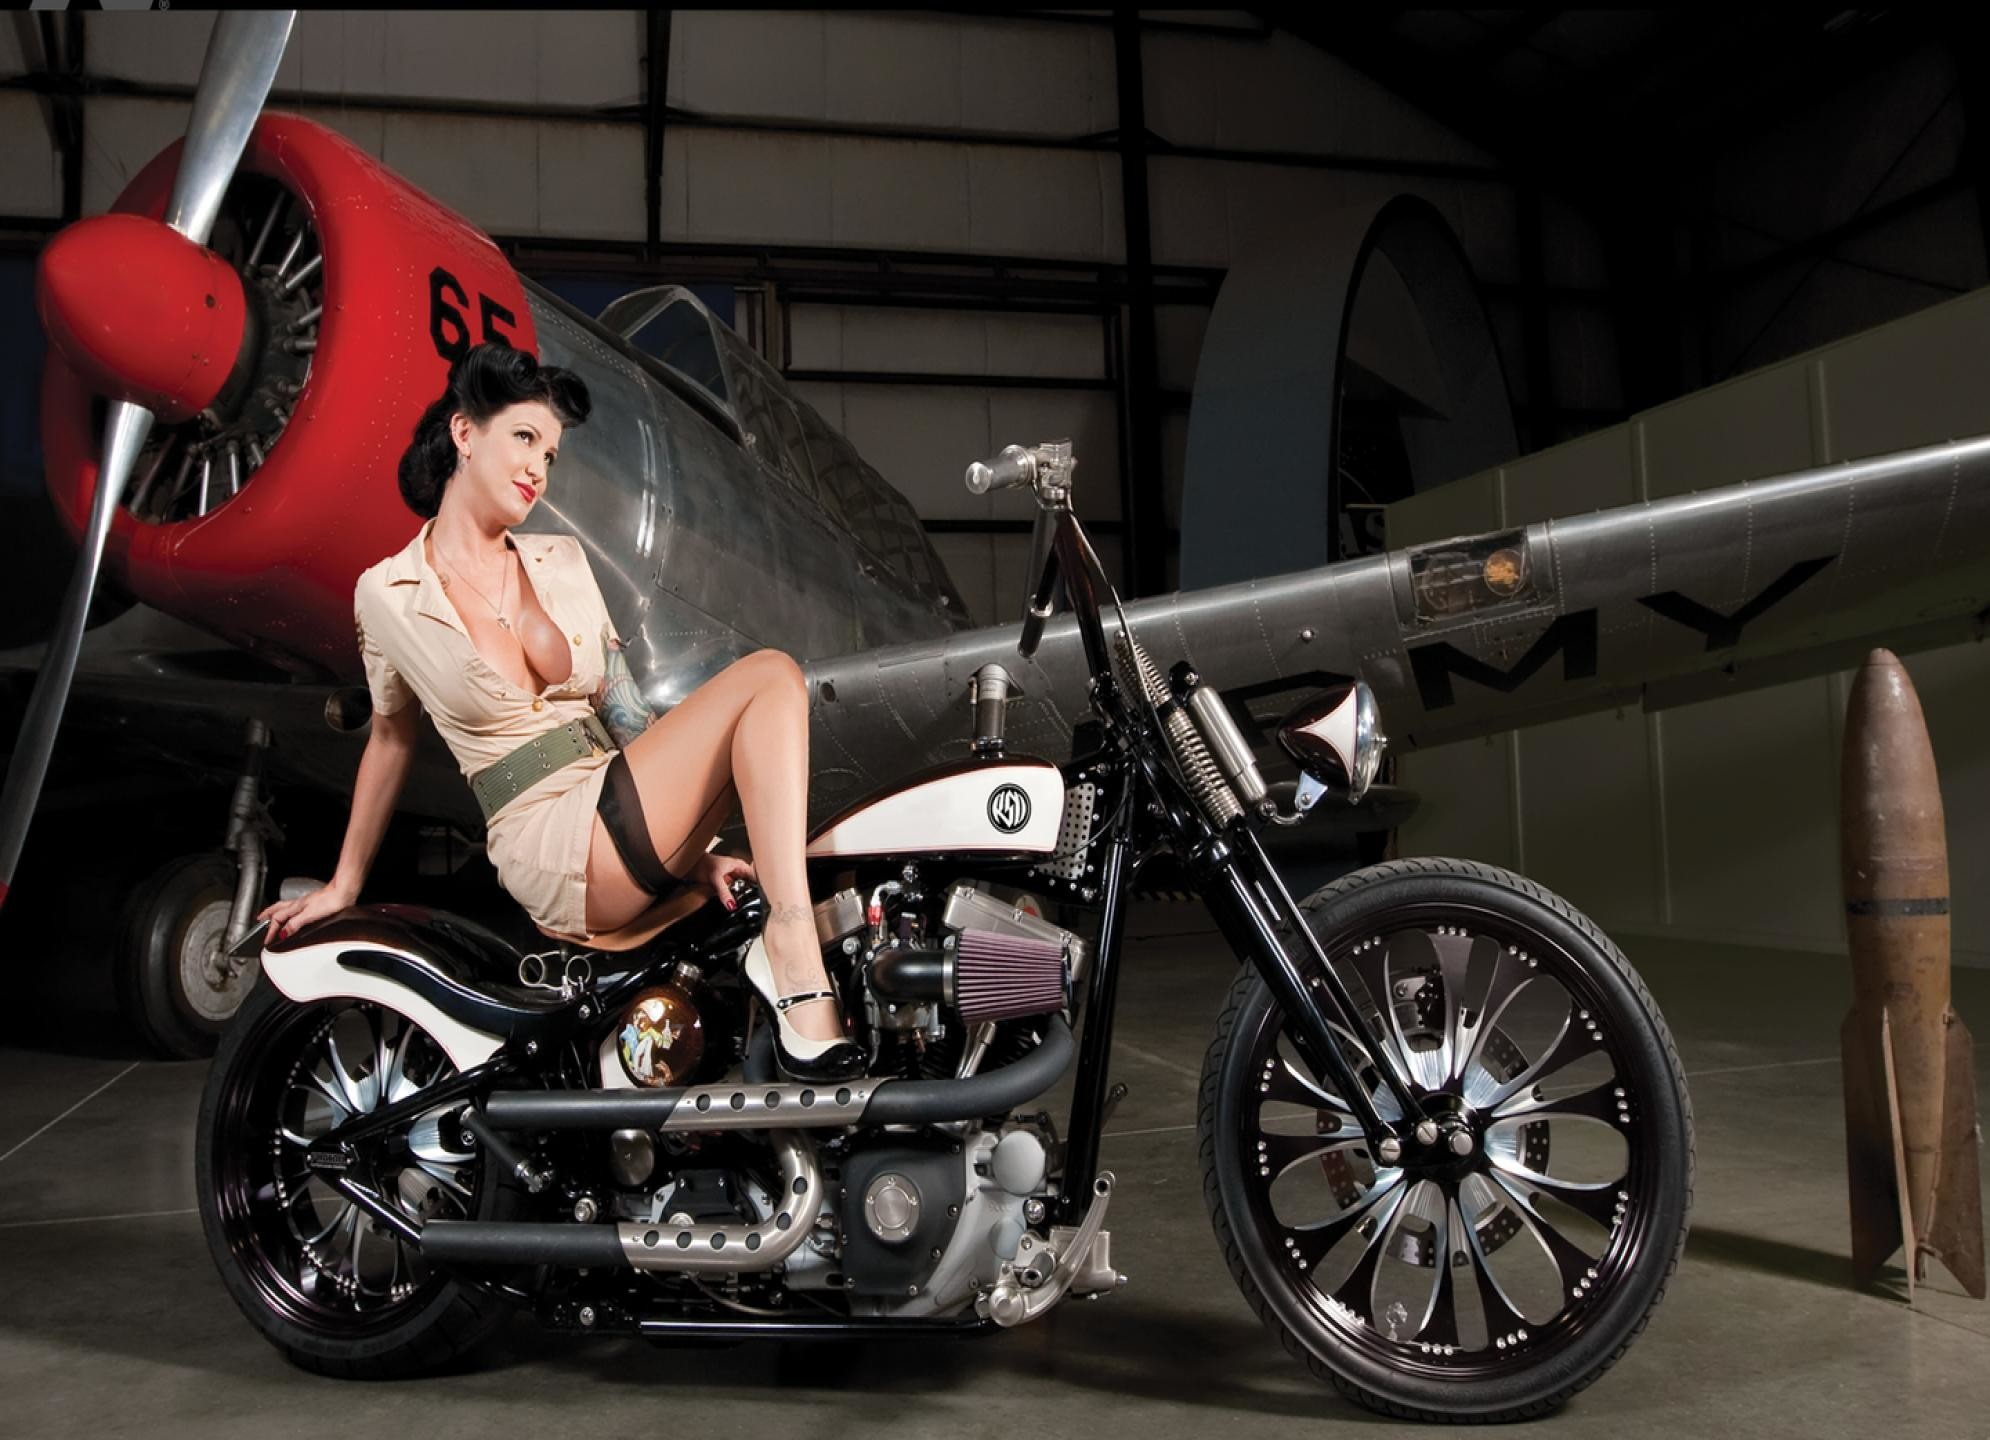 HD Wallpapers Motorcycles And Girls by Jessica Schrom #7